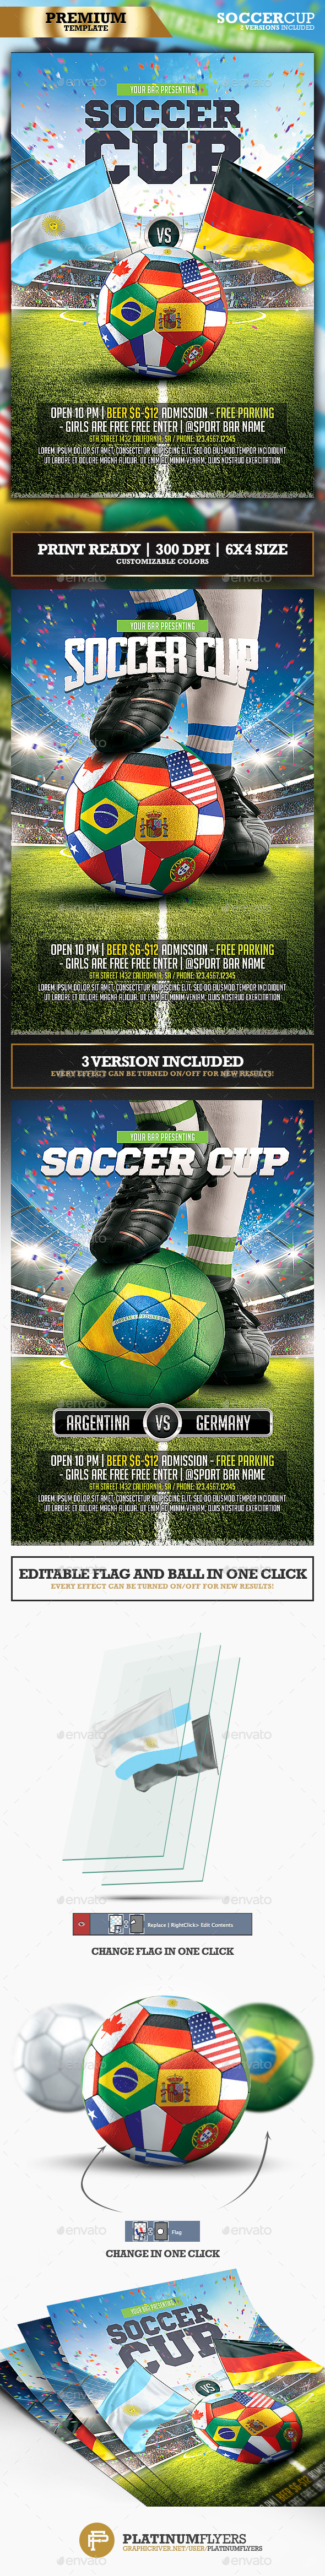 Soccer Cup Flyer - Print Templates